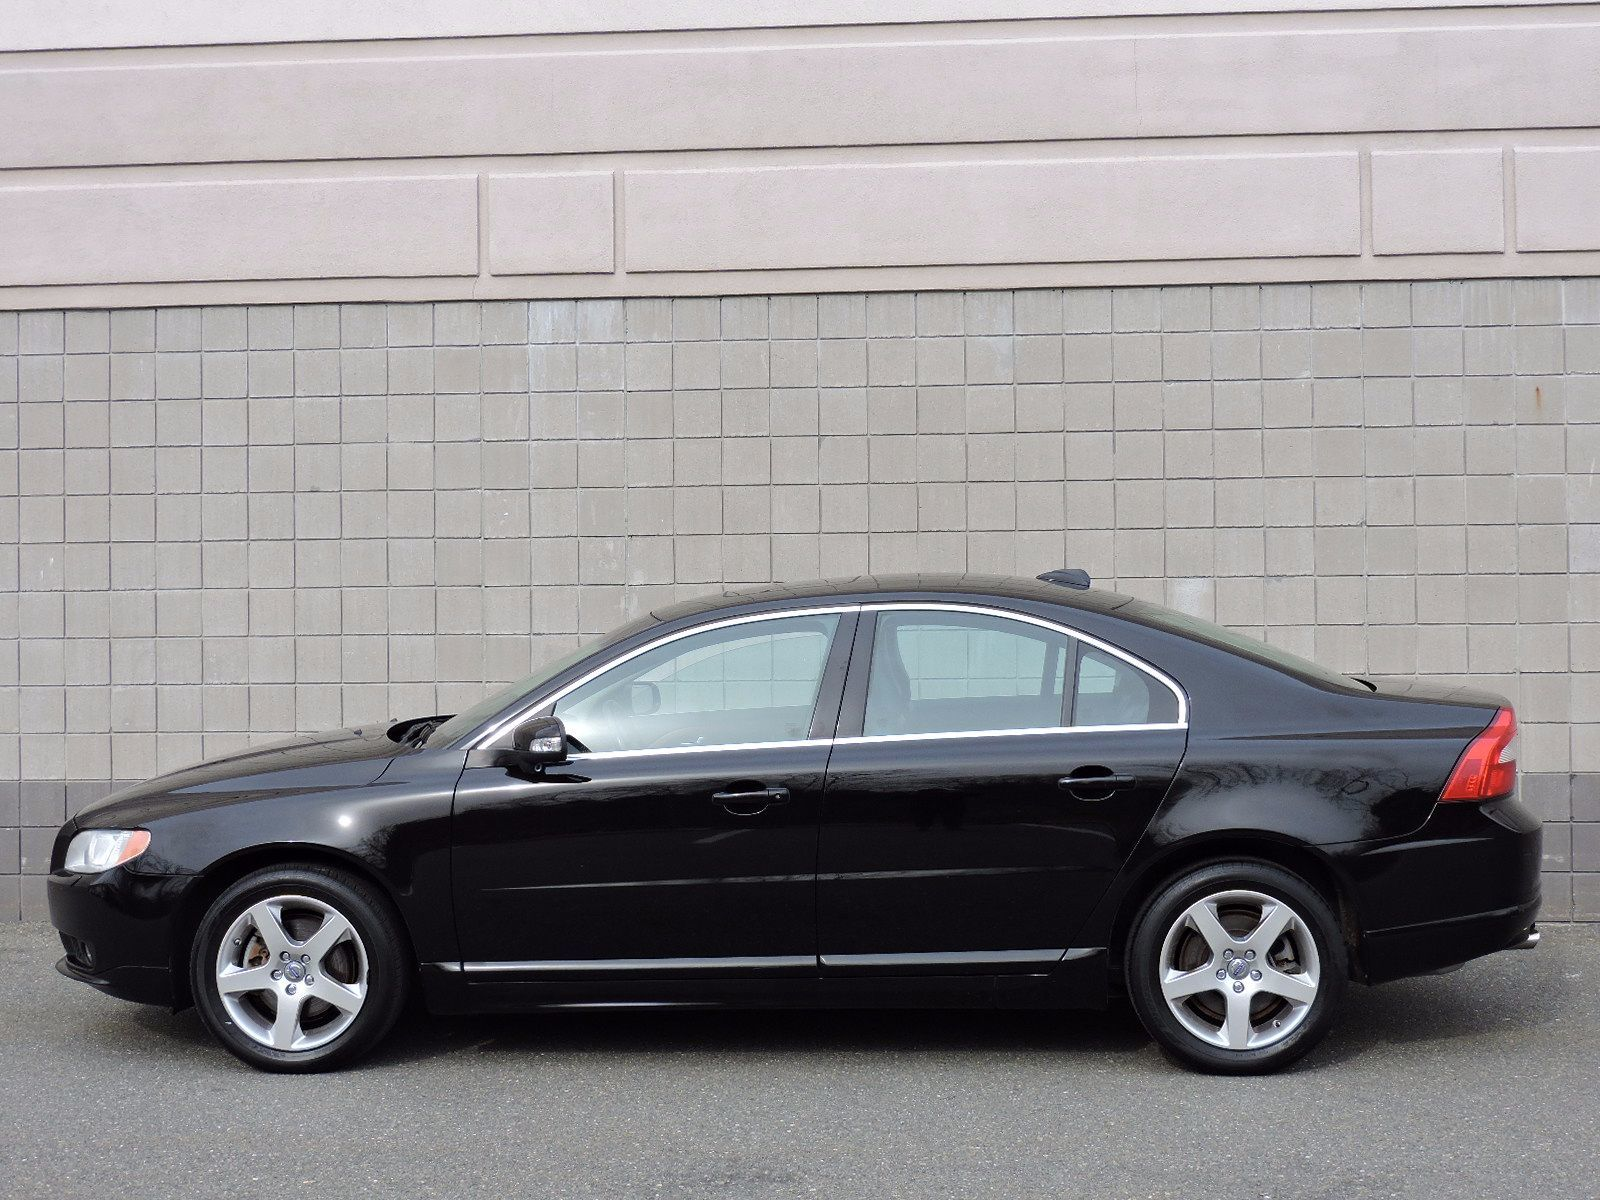 sale for northshore mall awd plus used volvo premier auto